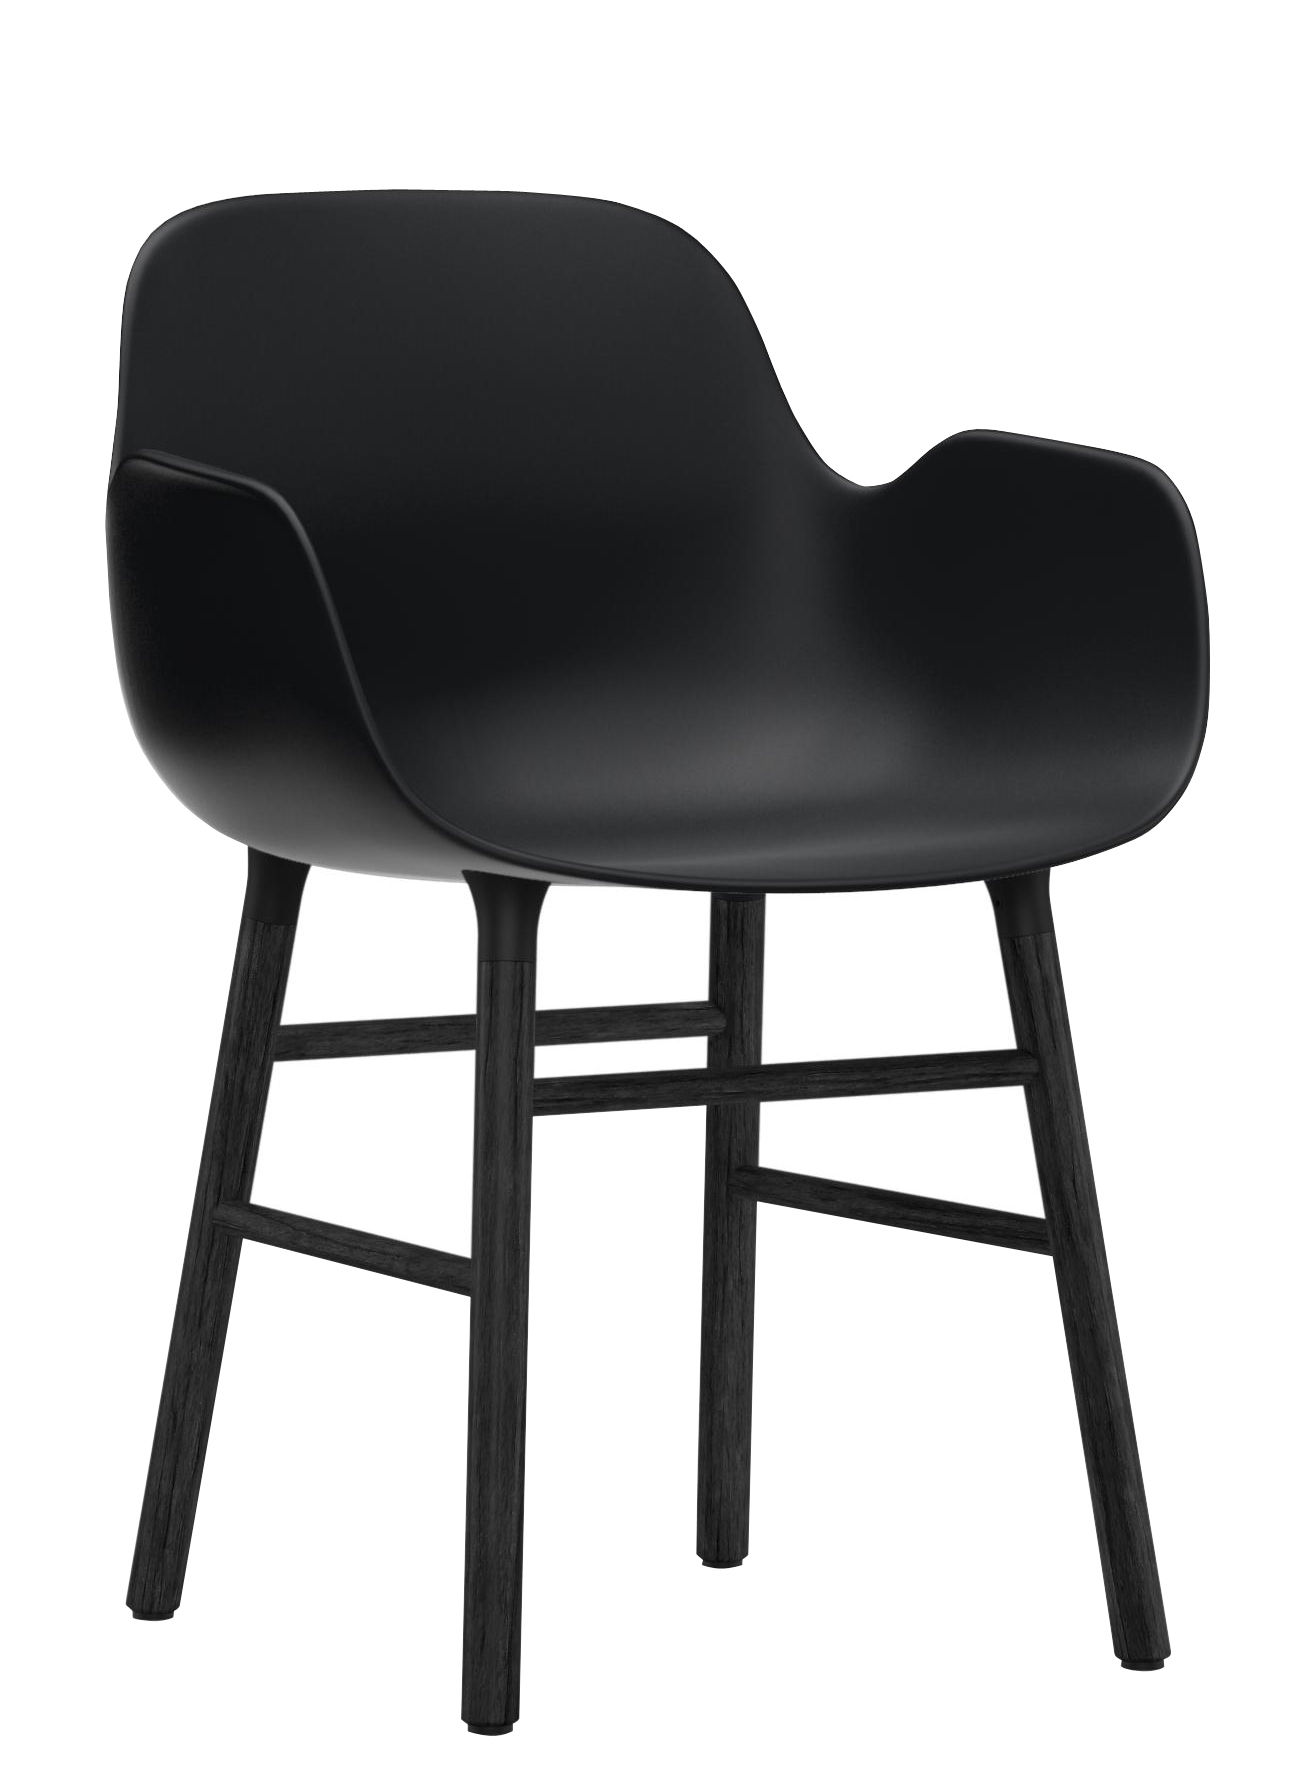 Furniture - Chairs - Form Armchair - Lacquered wood by Normann Copenhagen - Black - Lacquered oak, Polypropylene